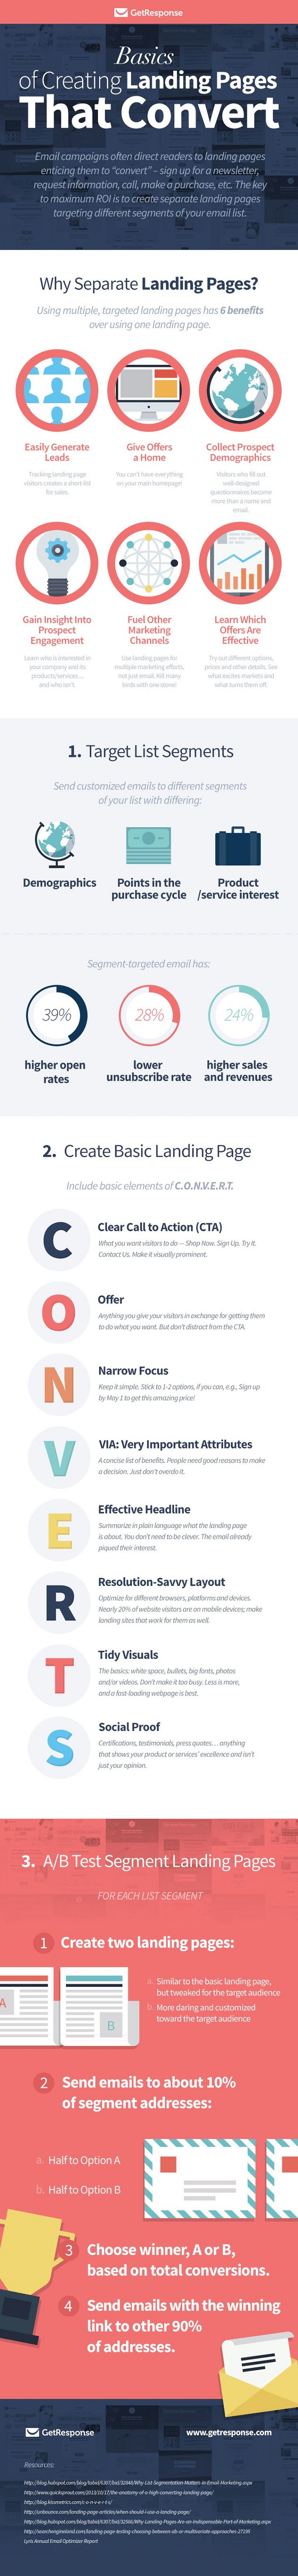 Infographic outlines tips for maximizing your landing pages